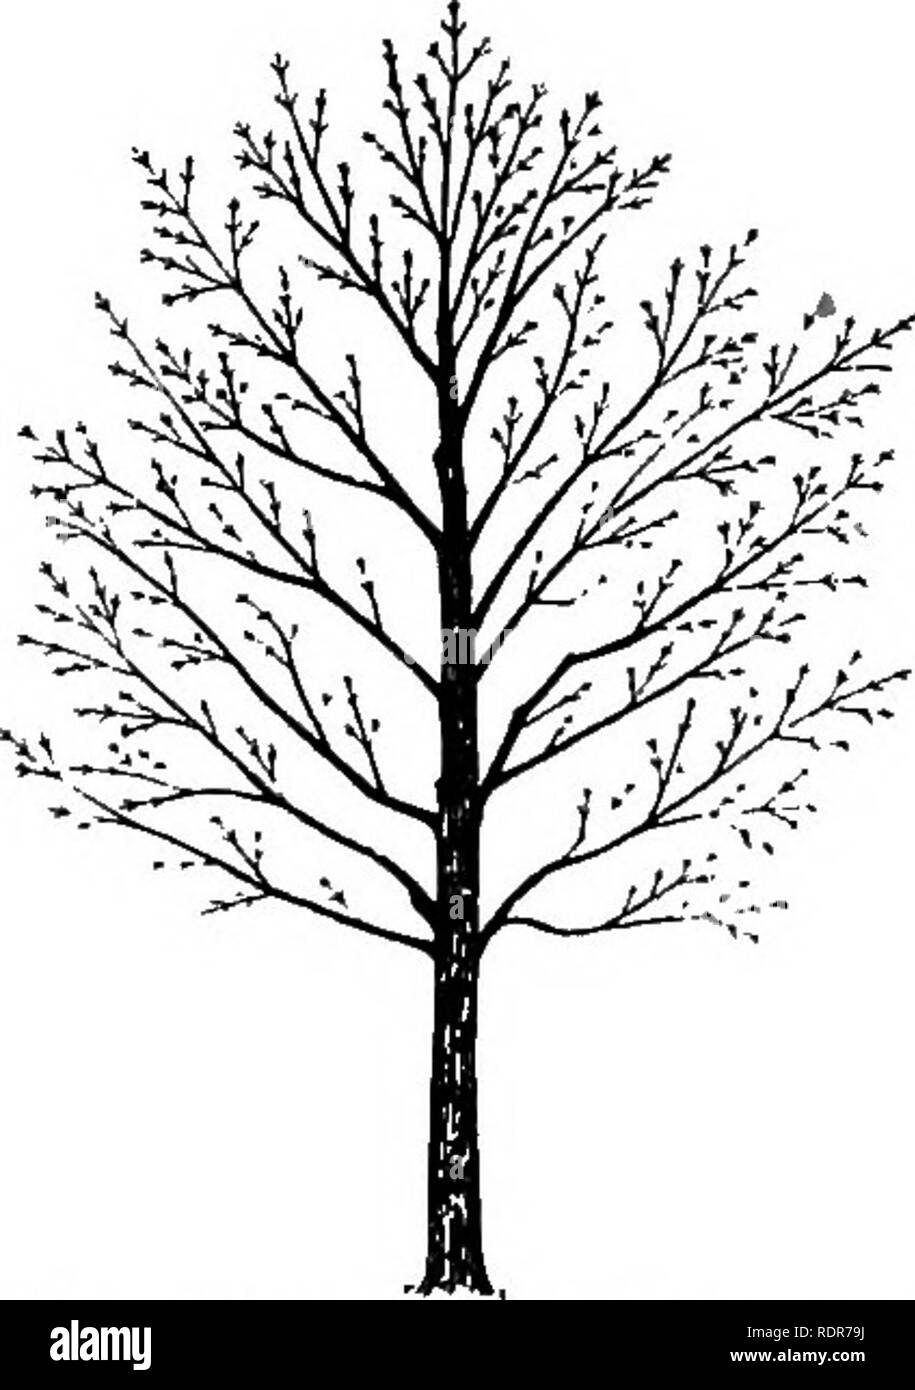 hight resolution of trees fig 8 diagram from a photo graph of a norway maple show ing the very dense crown common with this species the foliage produced makes a